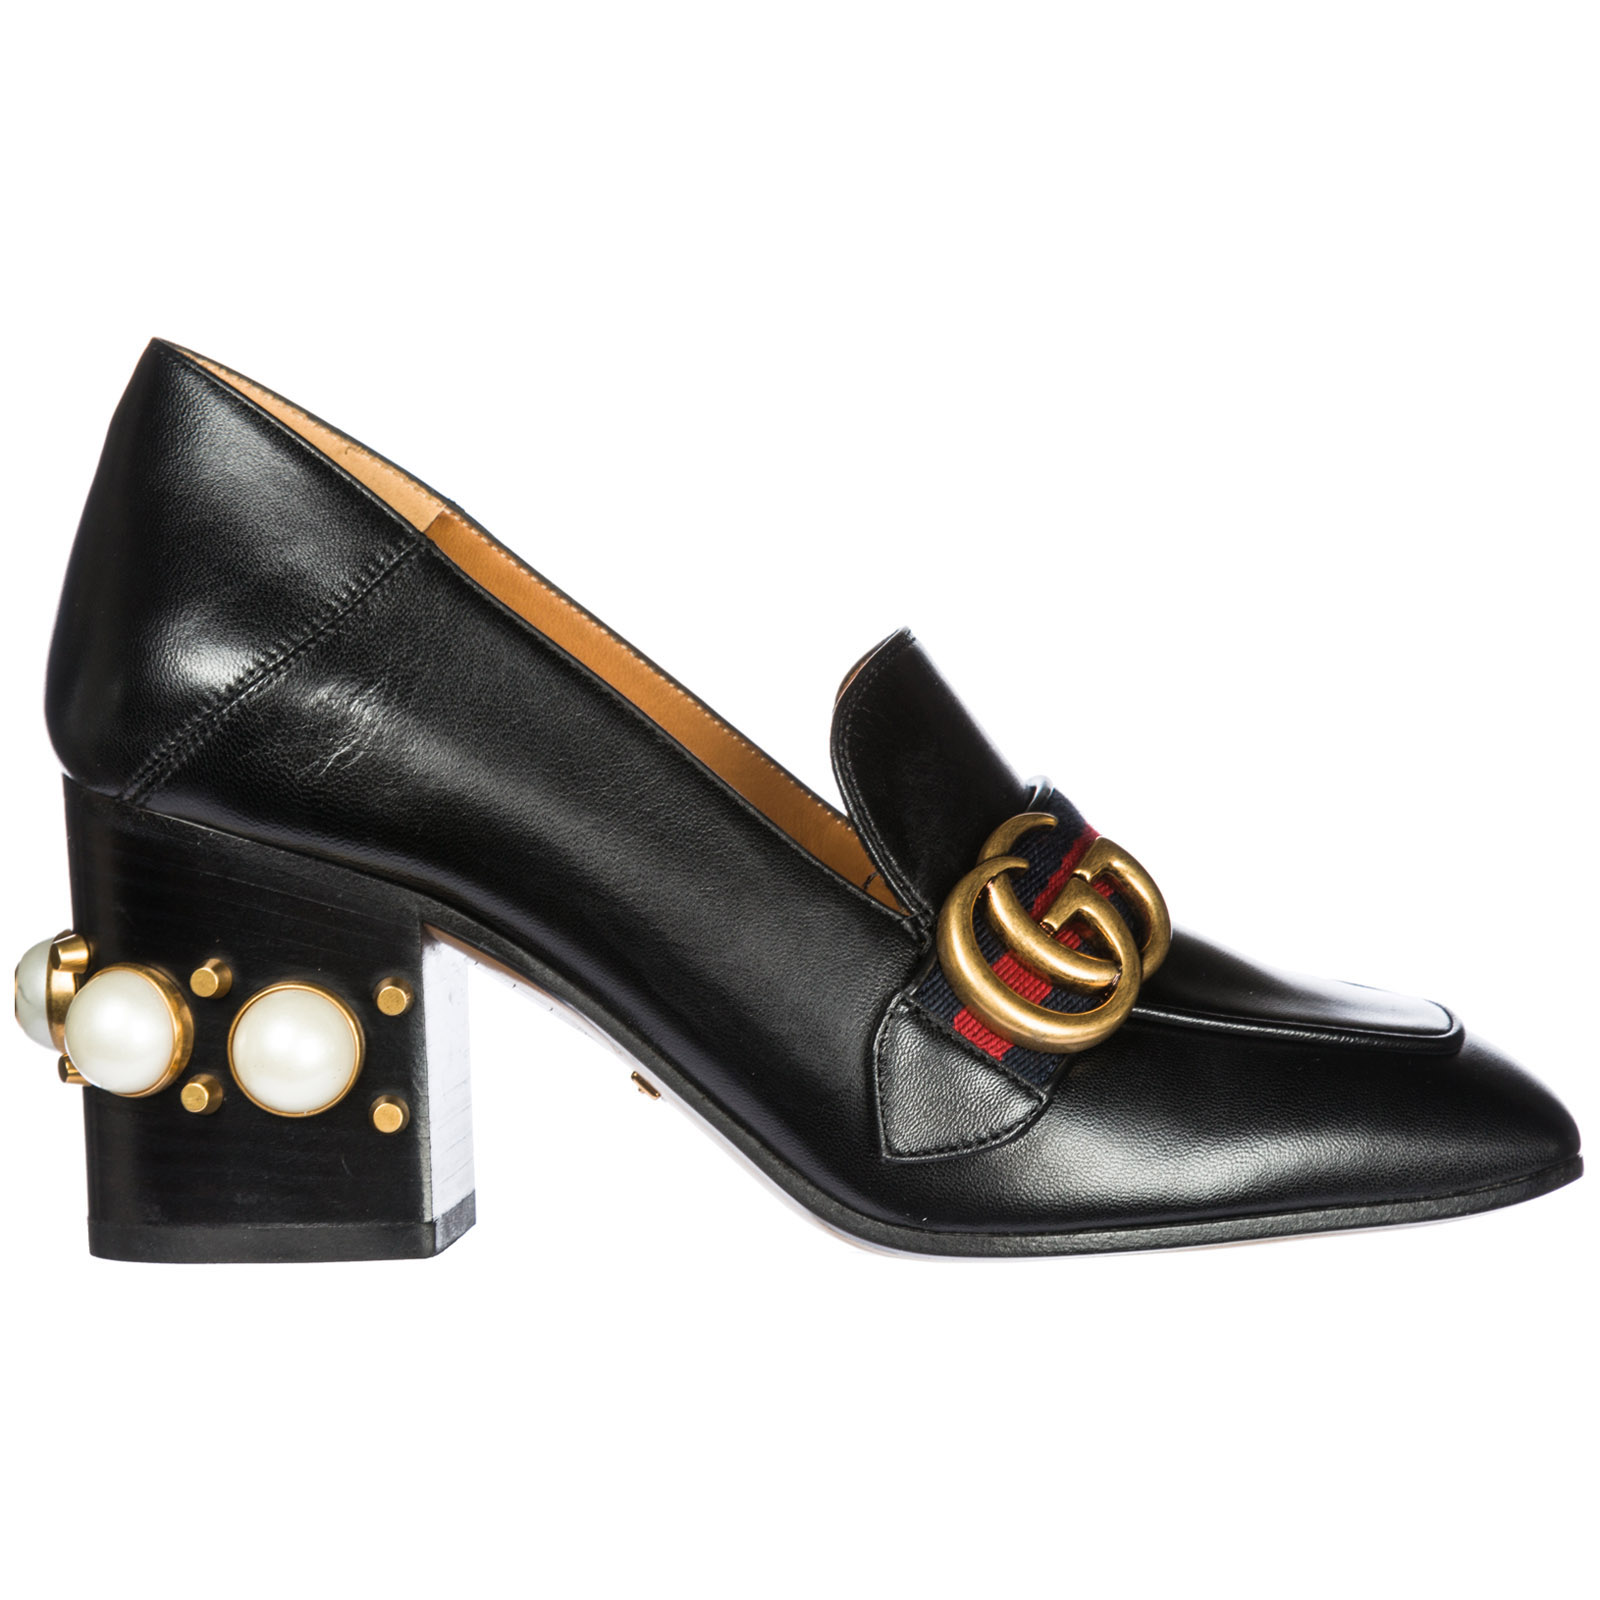 Gucci Women's Leather Pumps Court Shoes High Heel In Black